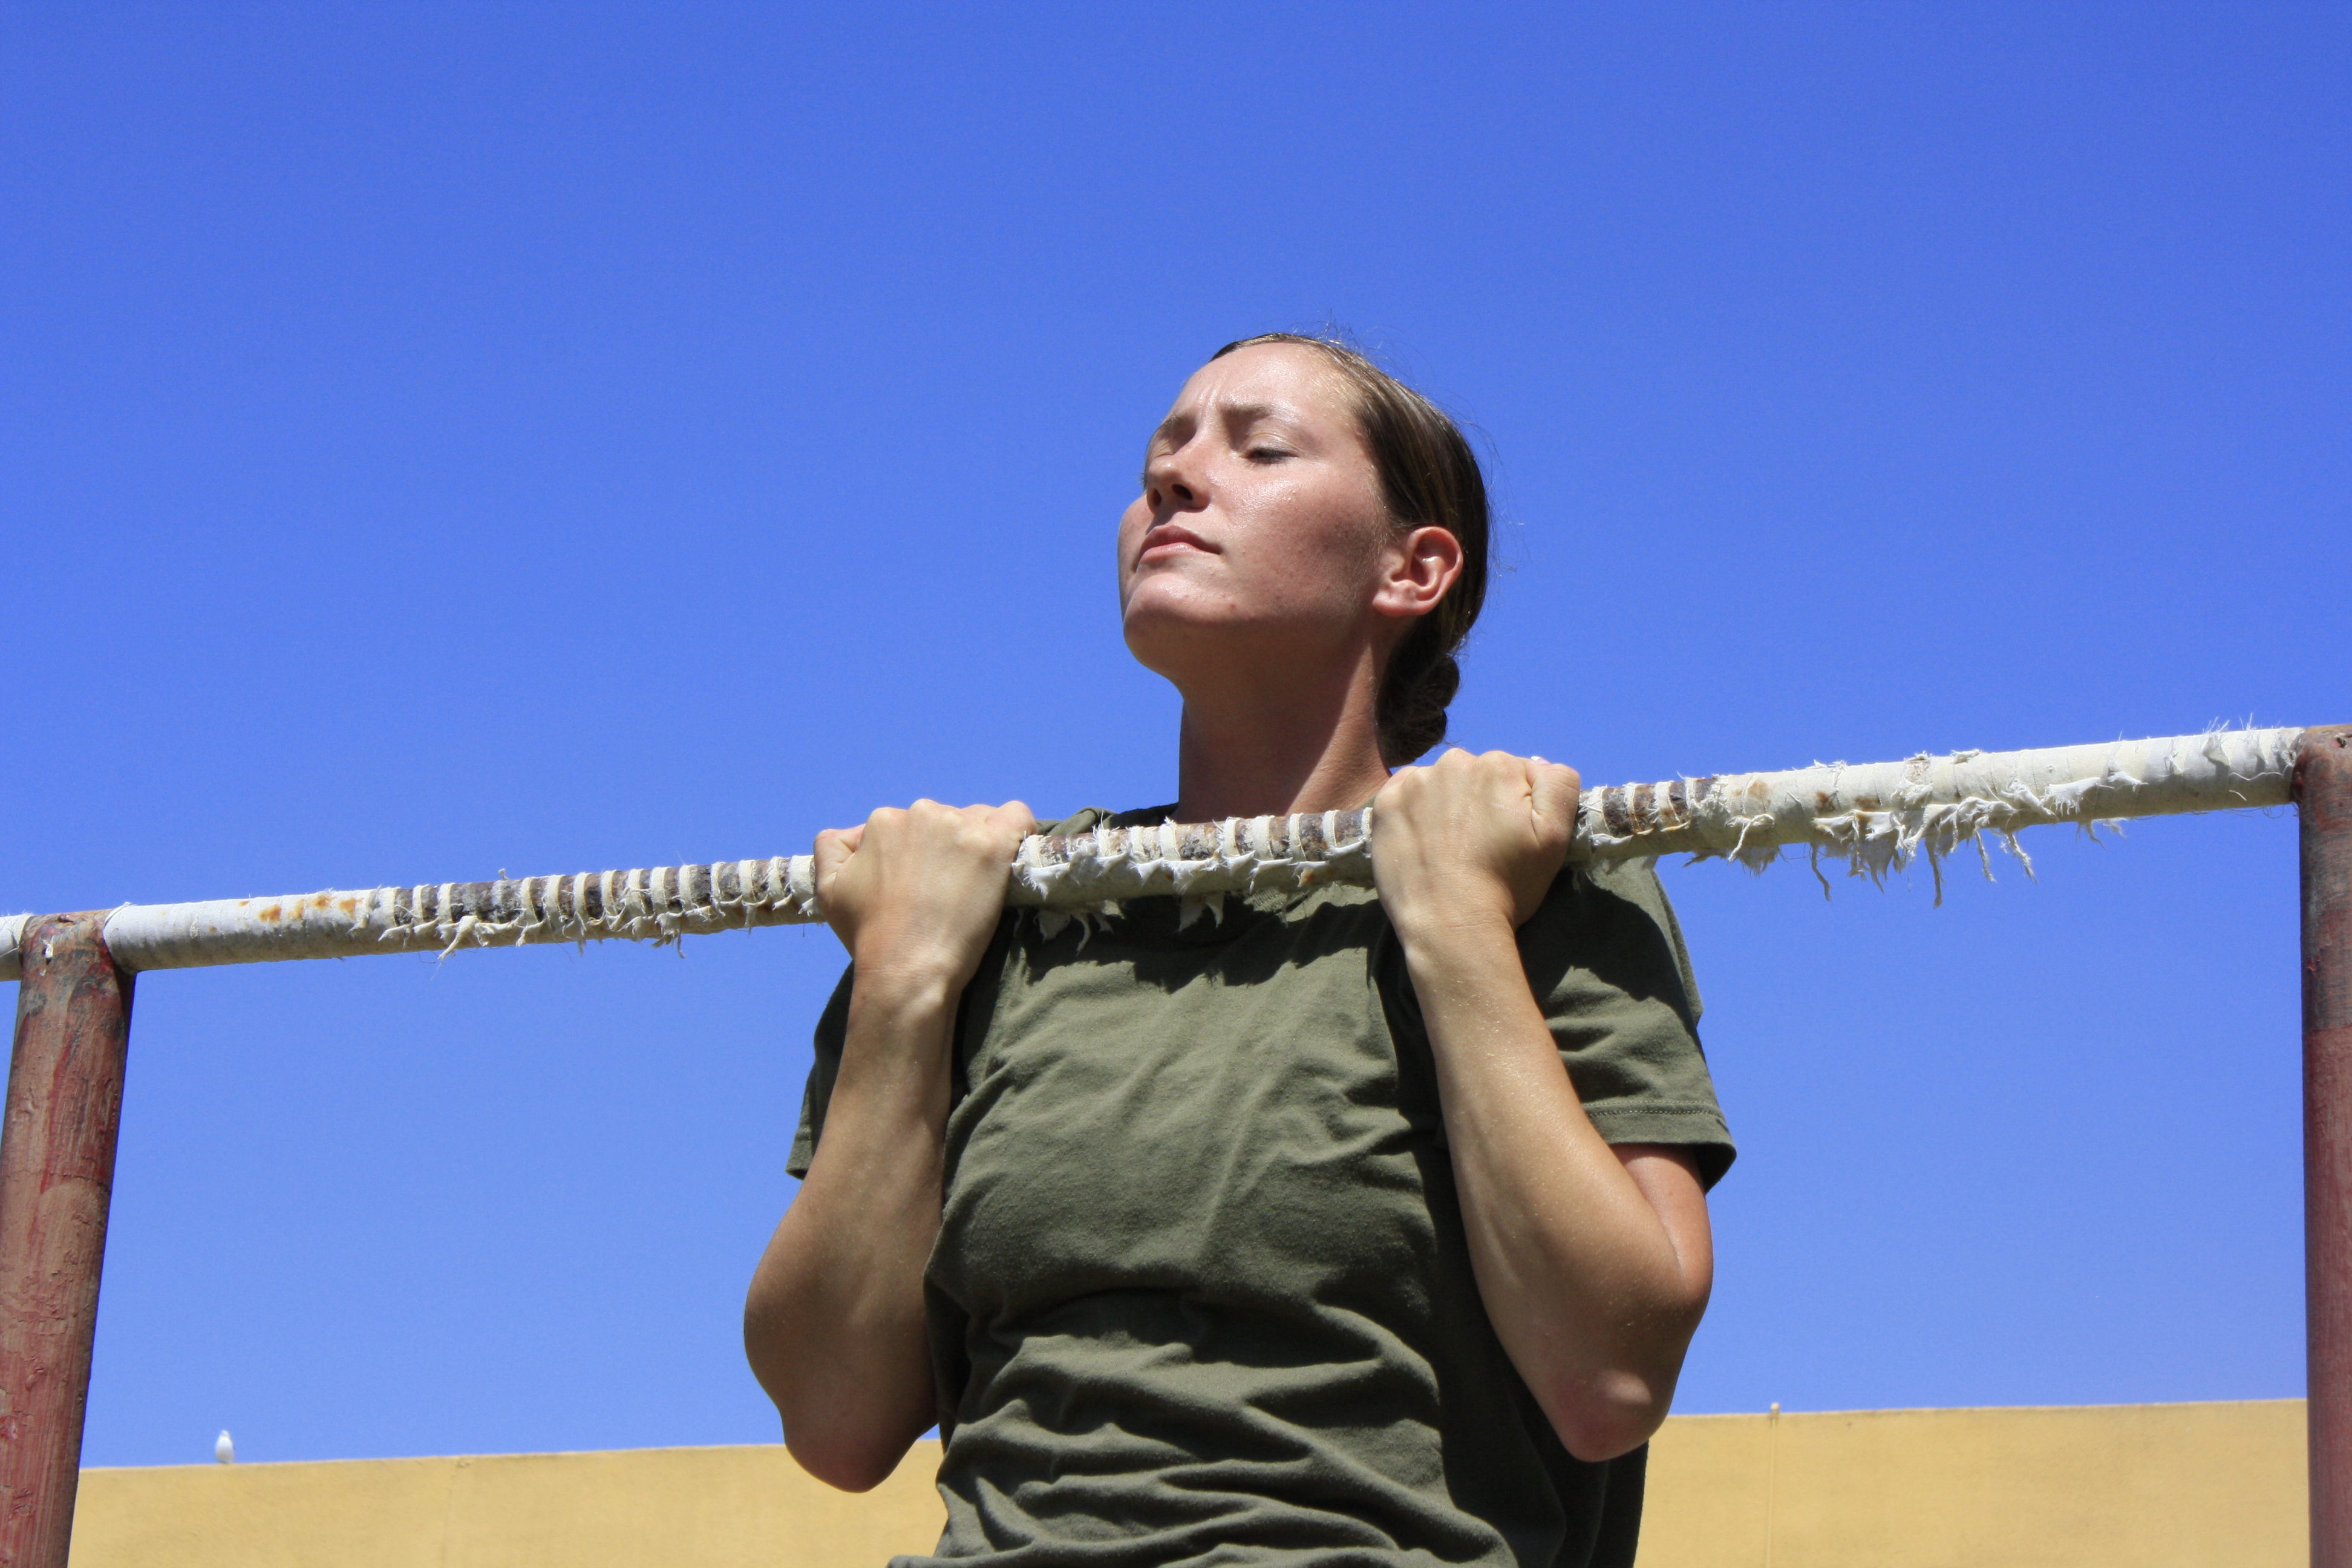 """New """"Politically Correct"""" Proposal: Marine Women Don't Need To Do Pull-Ups For Fitness Test Featured"""